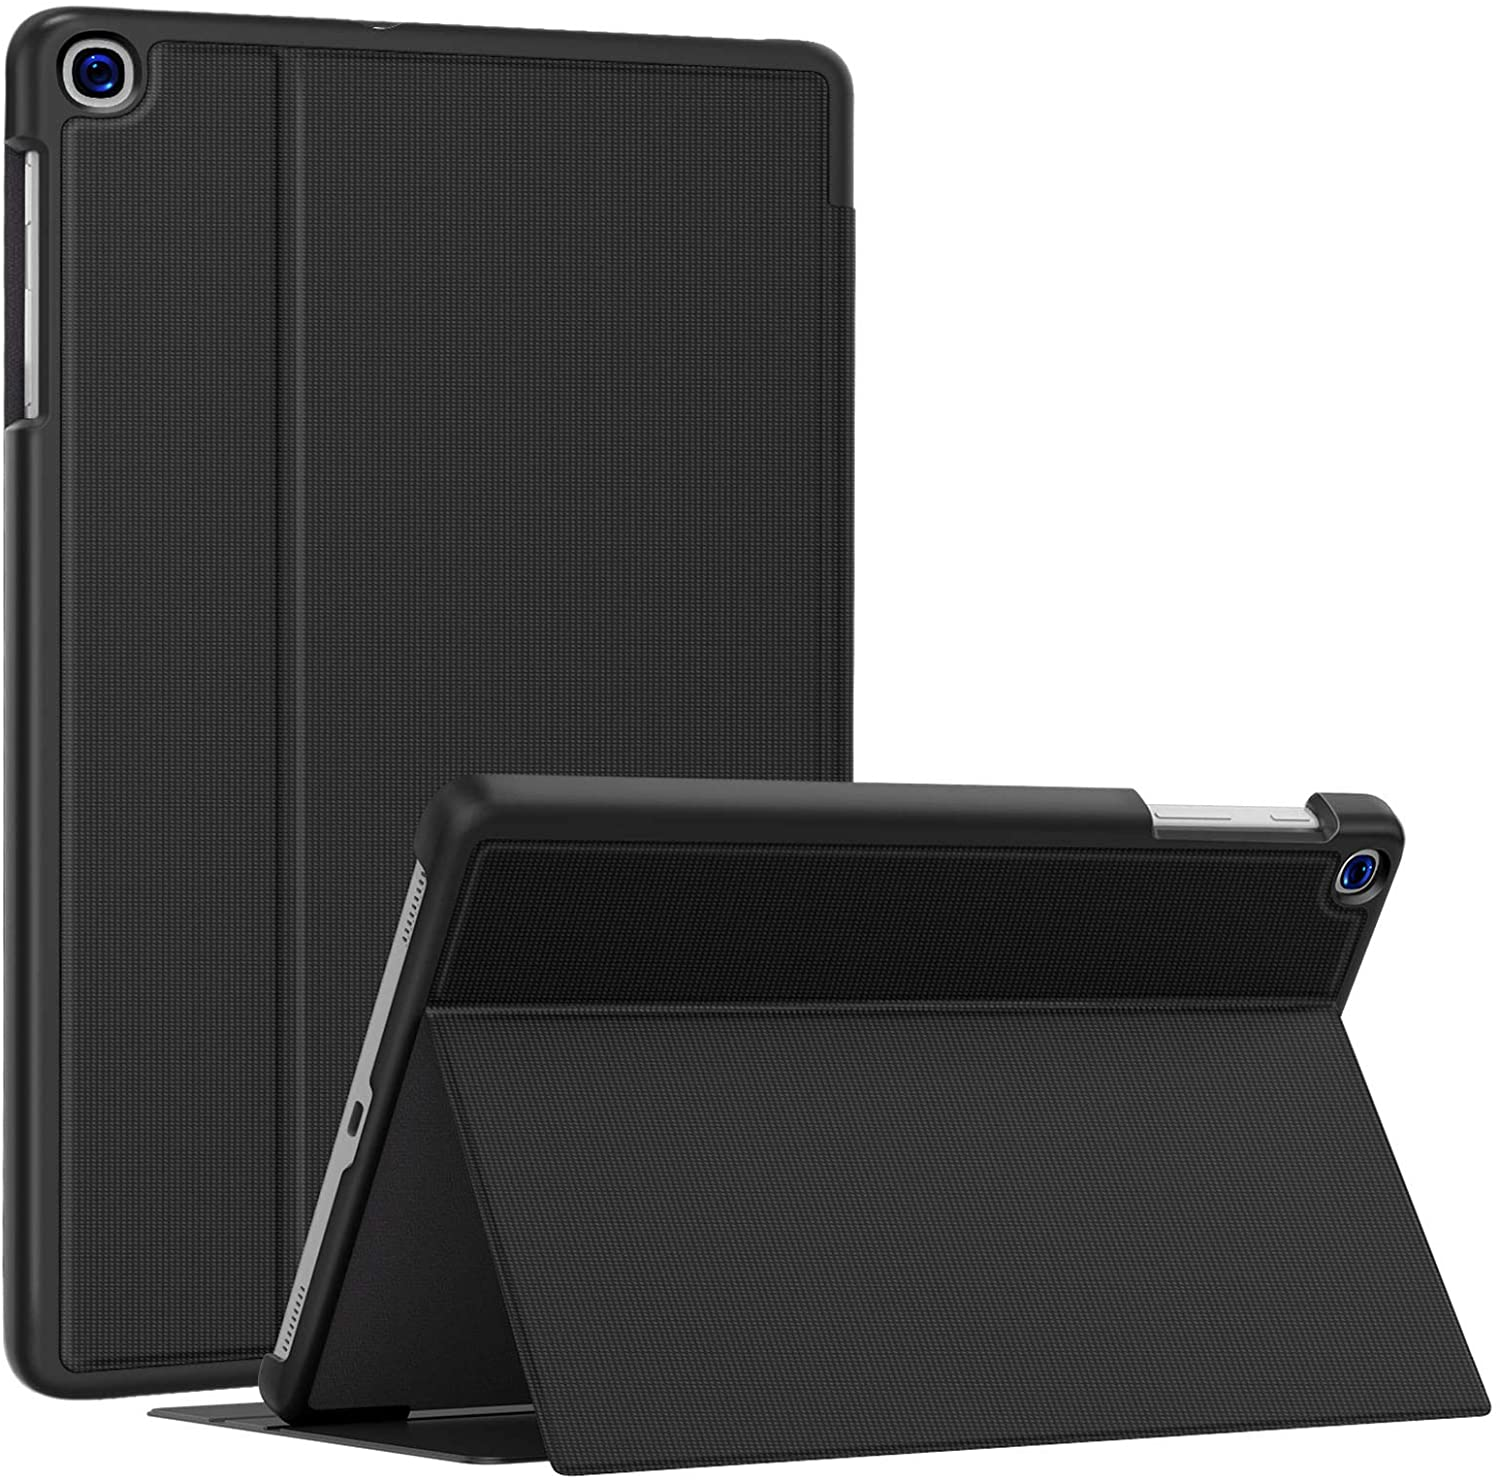 Soke Galaxy Tab A 10.1 Case 2019, Premium Shock Proof Stand Folio Case, Multi- Viewing Angles, Soft TPU Back Cover for Samsung Galaxy Tab A 10.1 inch Tablet [SM-T510/T515/T517],Black: Electronics